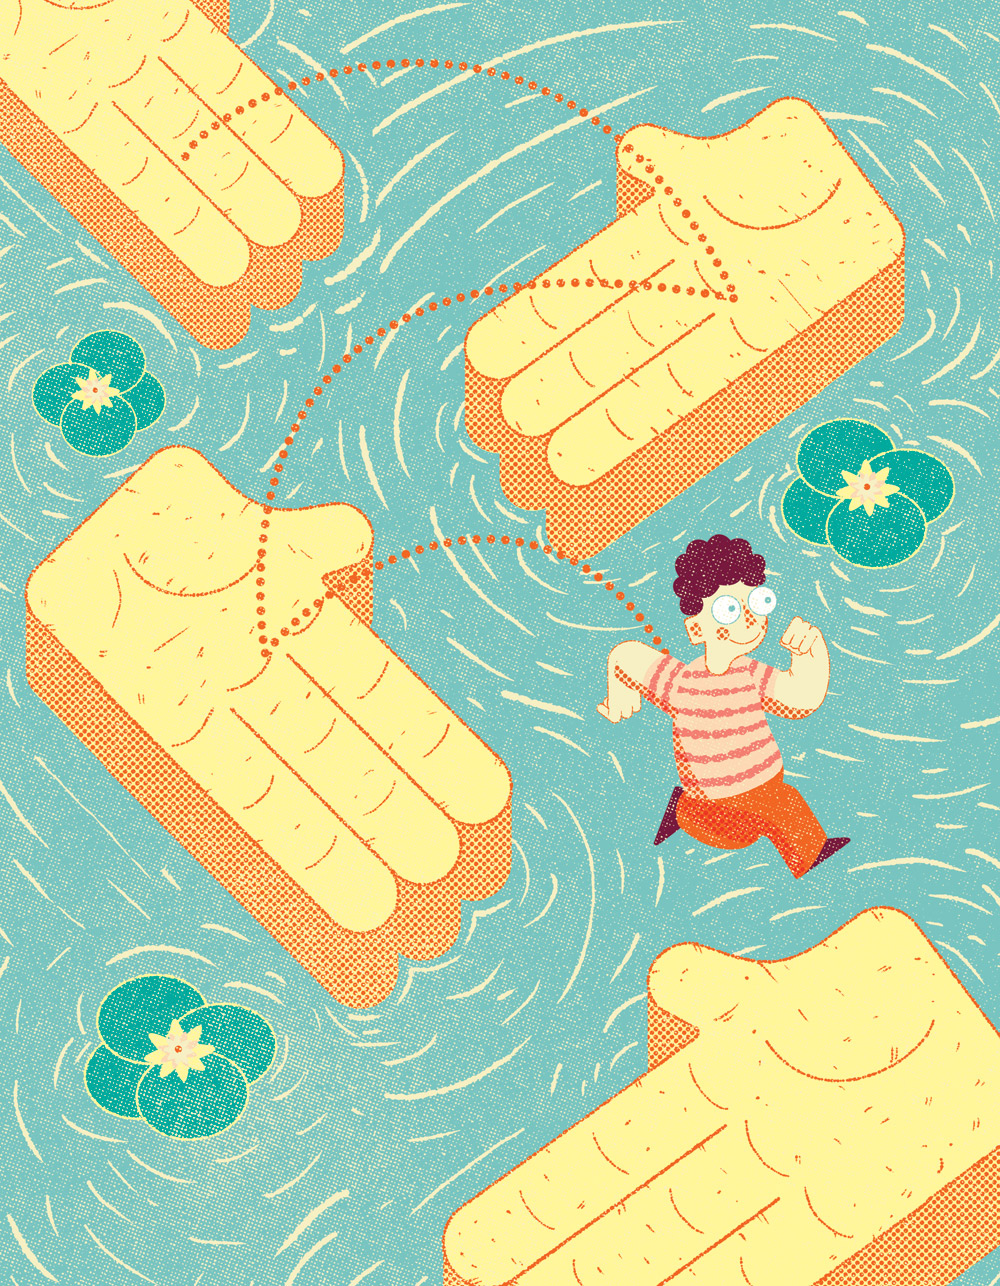 Cover illustration for Bulletin magazine, the monthly publication of the Royal College of Speech & Language Therapists.